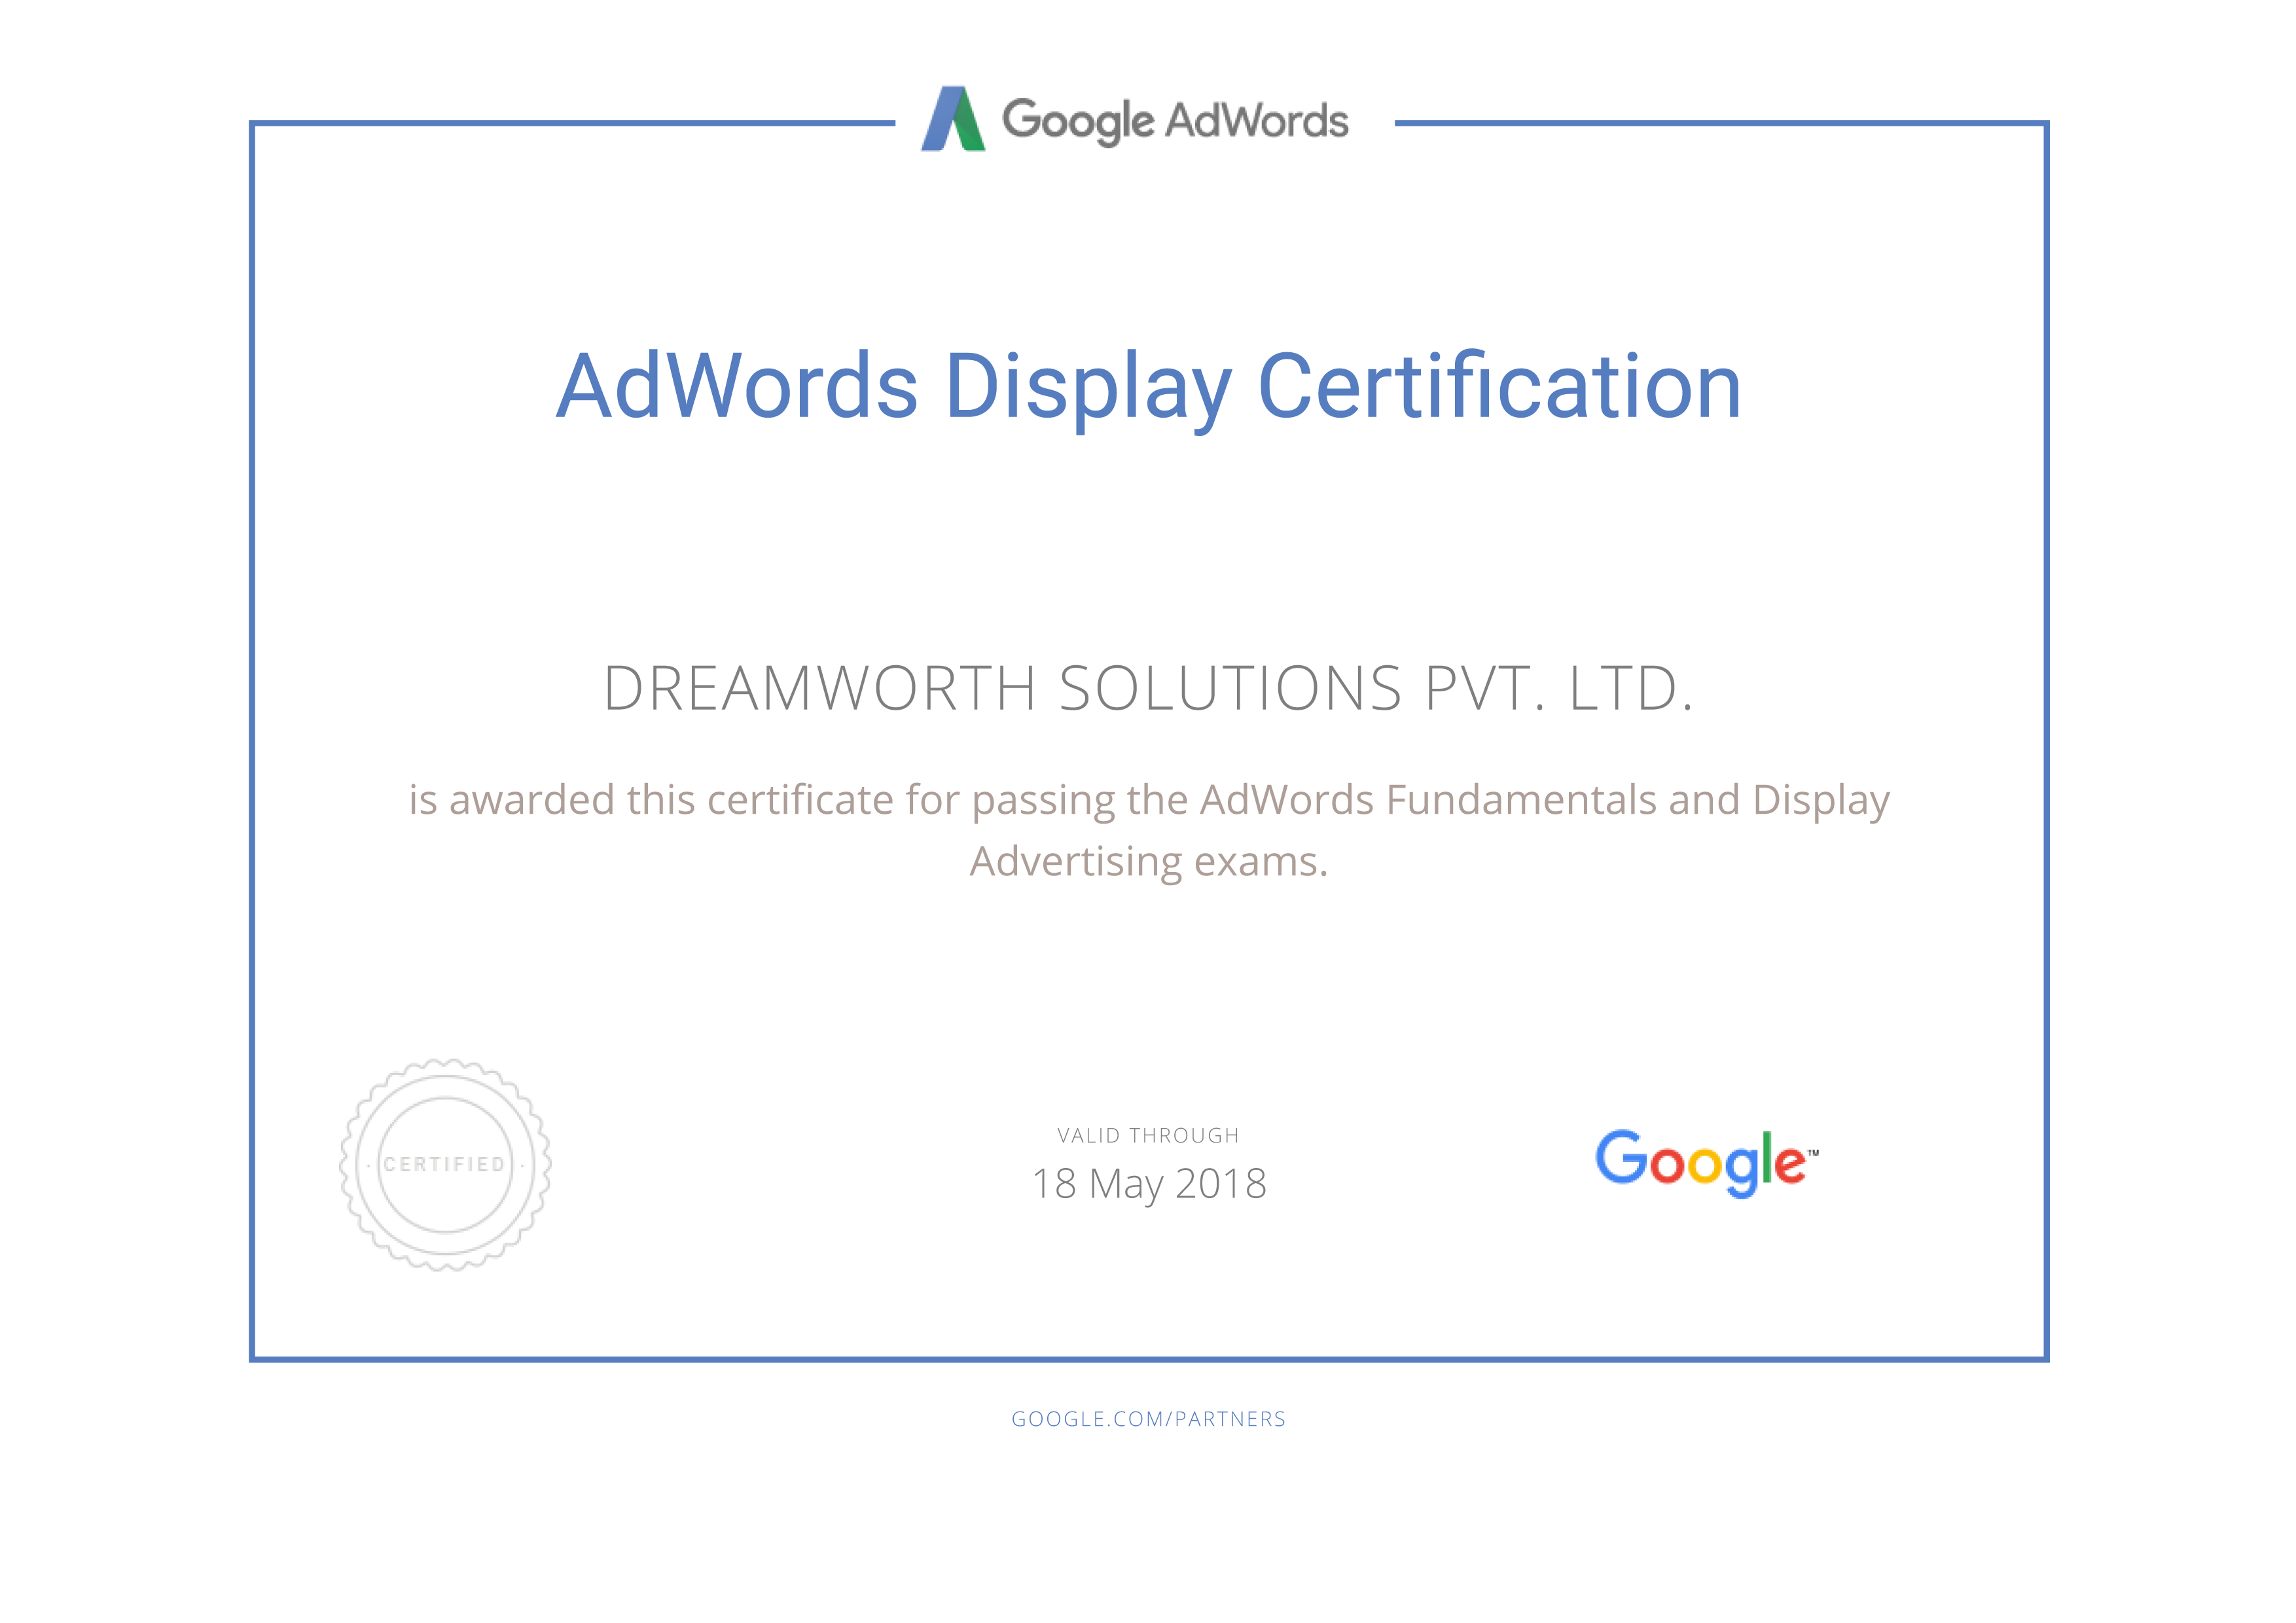 Dreamworth Provides the best seo services as compare any other seo company in Pune